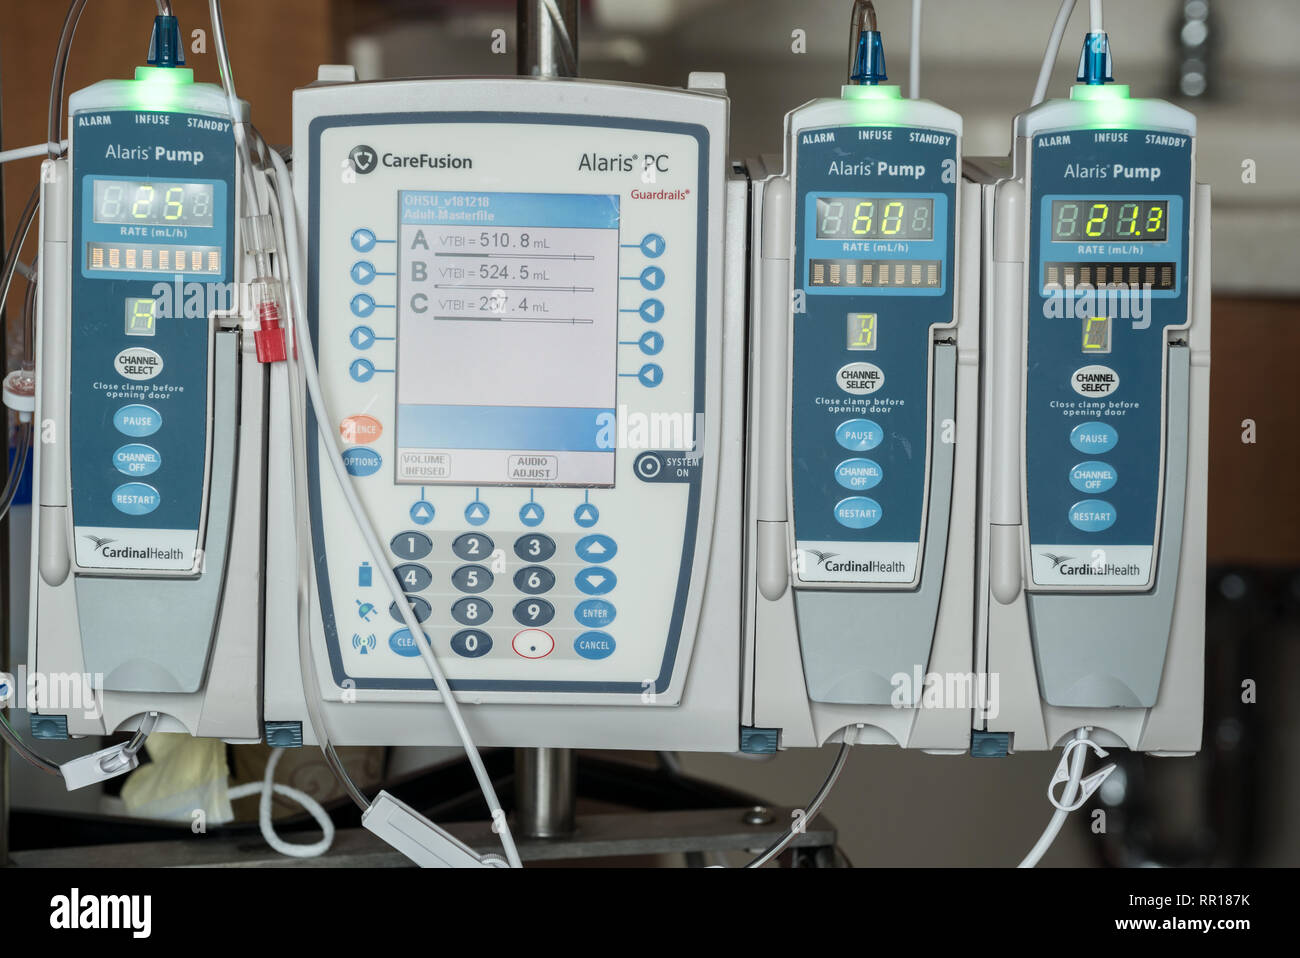 Hospital Pump Stock Photos & Hospital Pump Stock Images - Alamy